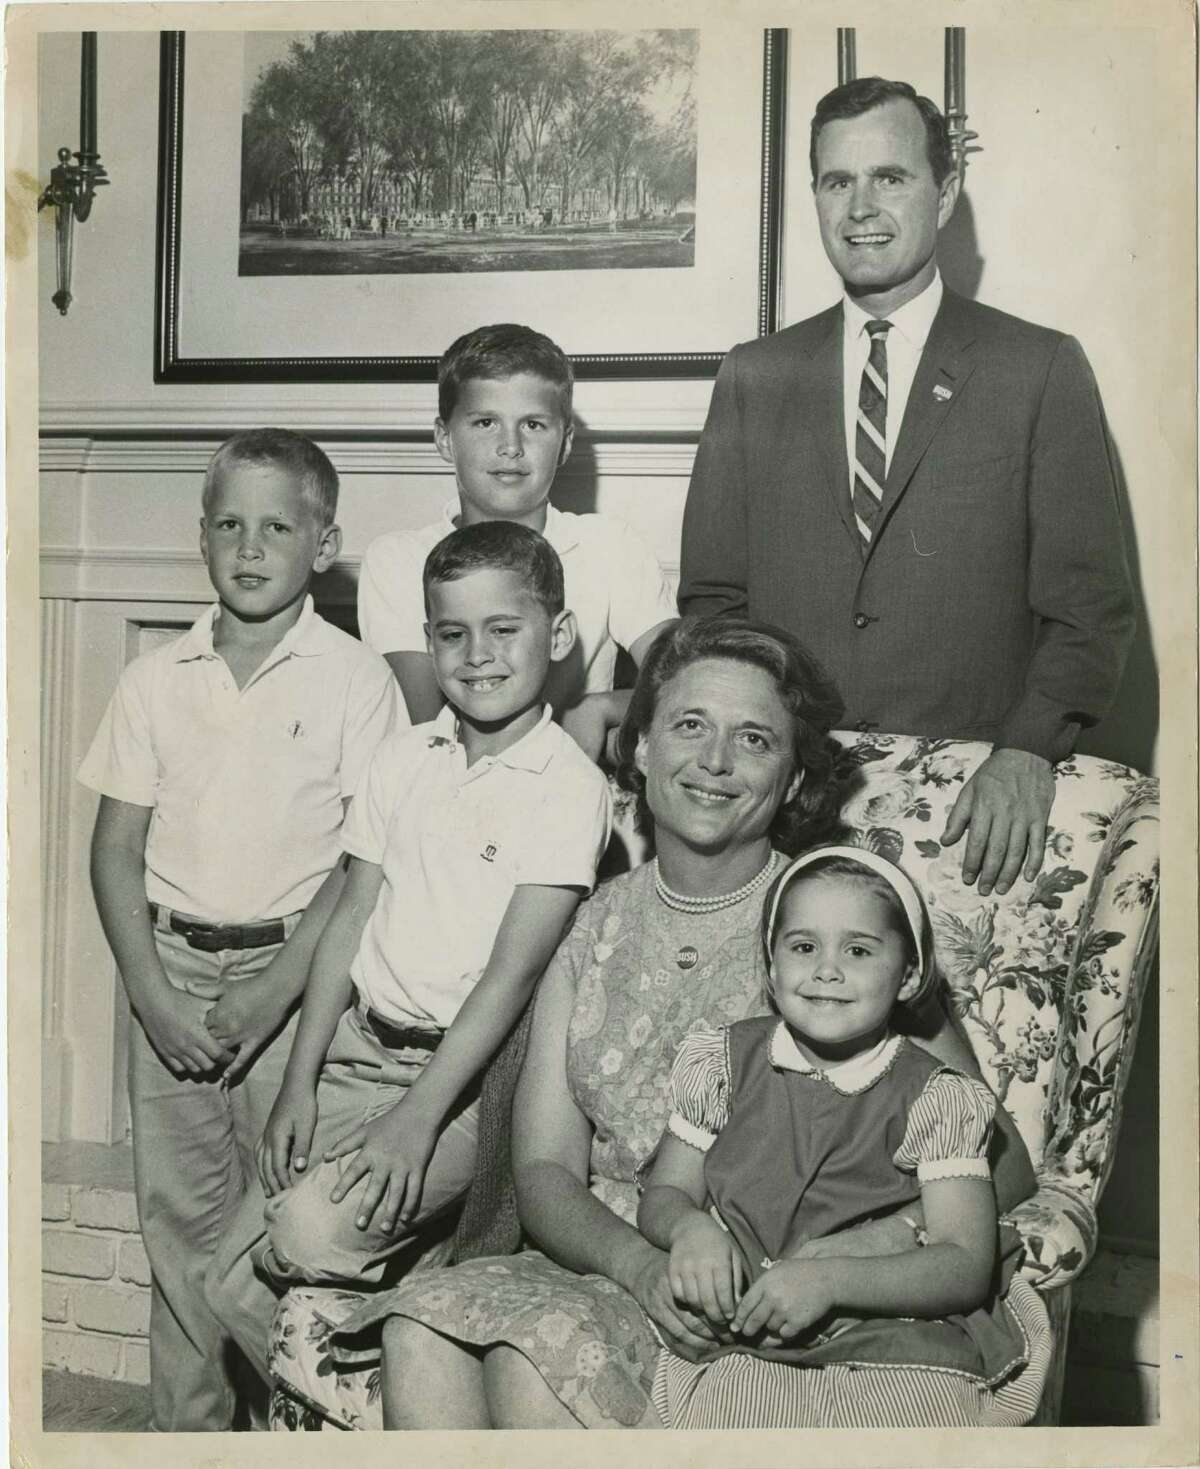 Then-U.S. Senate candidate George Bush posed for a family photo in 1964 with three of his sons, from left, Neil, Jeb and Marvin (seated); his wife, Barbara, and daughter, Dorothy. Bush's eldest son George is not in the photo. Dave Farmer / Houston Post